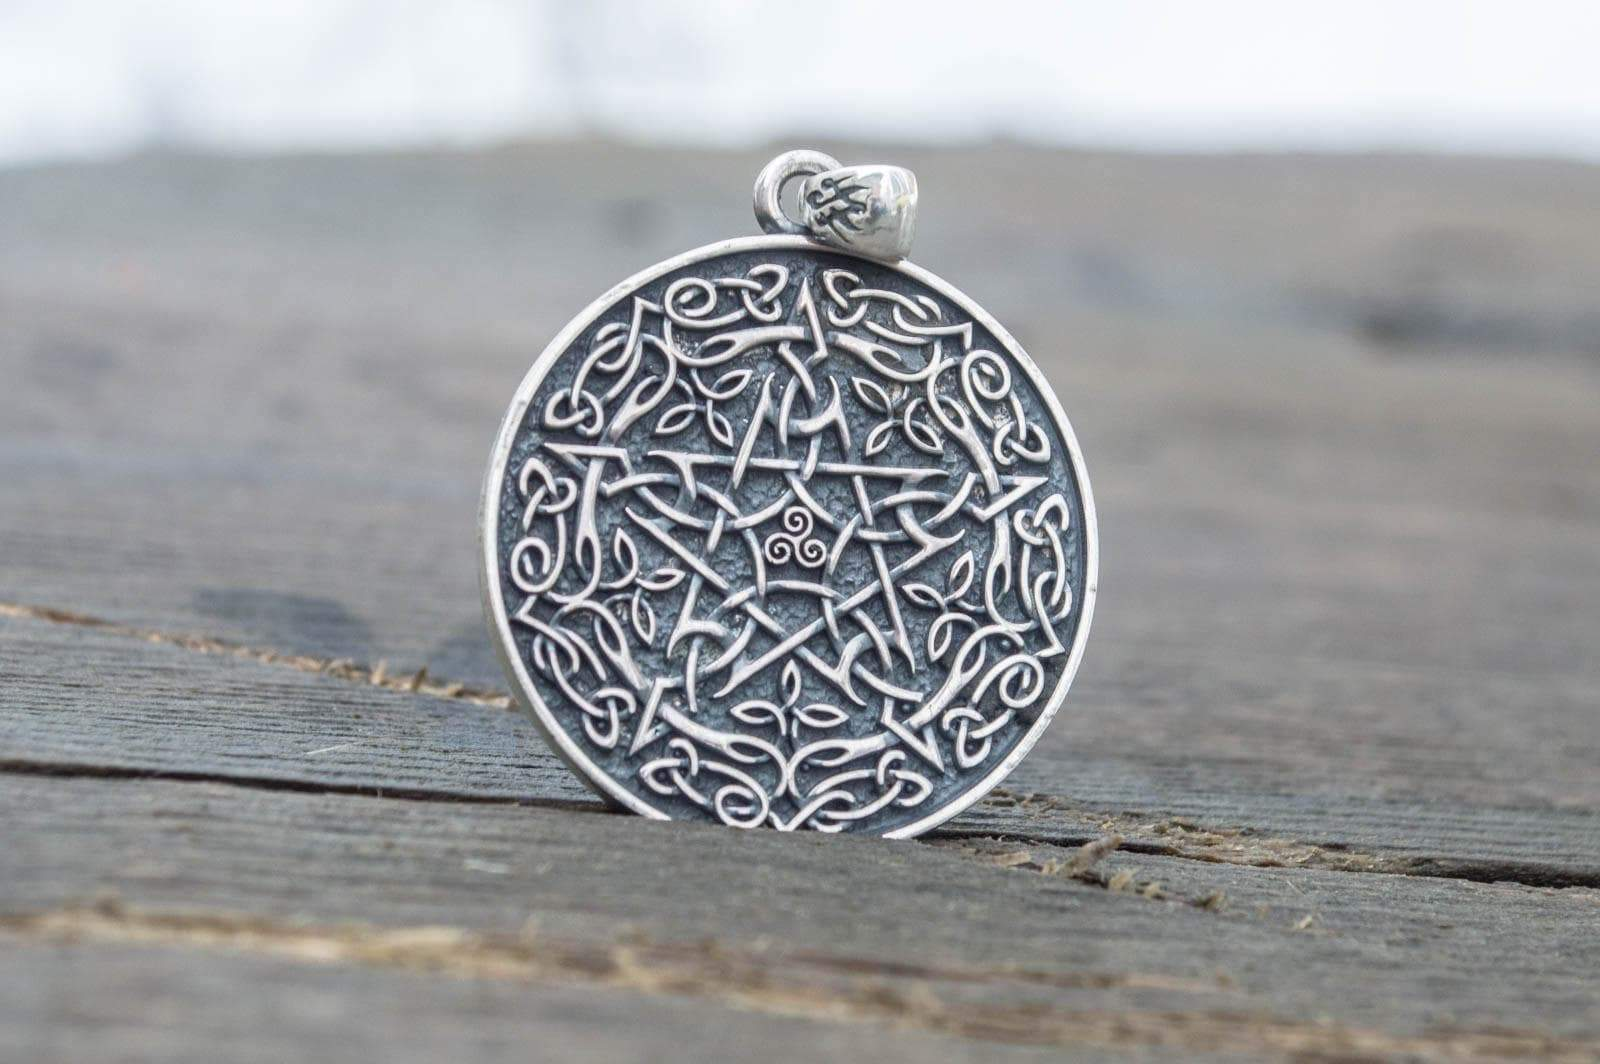 Pendants & Necklaces Wiccan Pentagram Sterling Silver Pendant with Triskelion & Knotwork Ancient Treasures Ancientreasures Viking Odin Thor Mjolnir Celtic Ancient Egypt Norse Norse Mythology